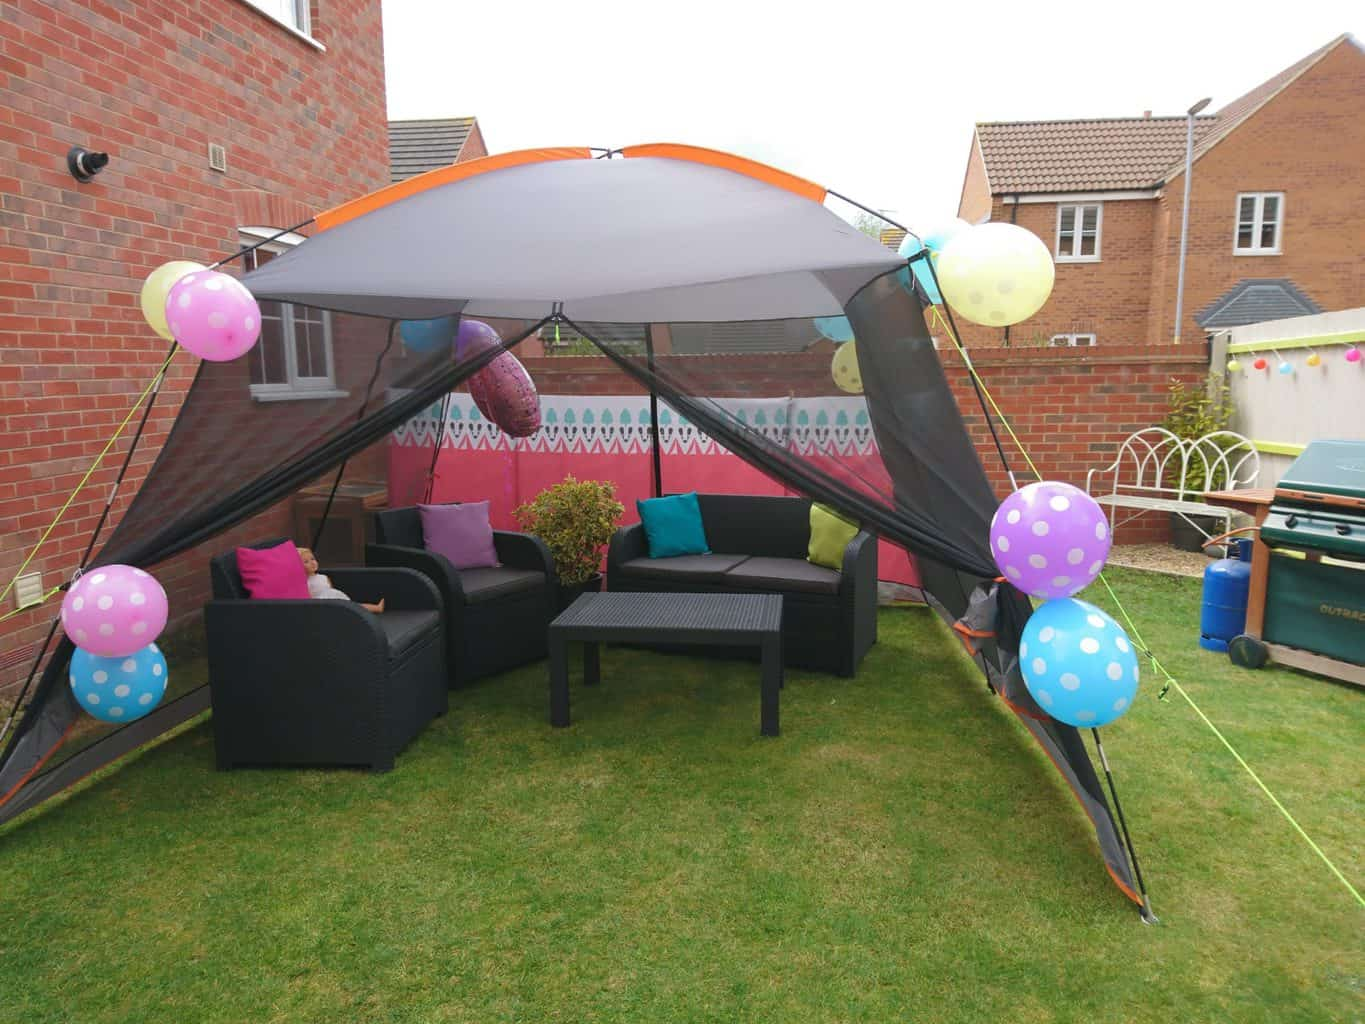 Outdoor party mistakes to avoid